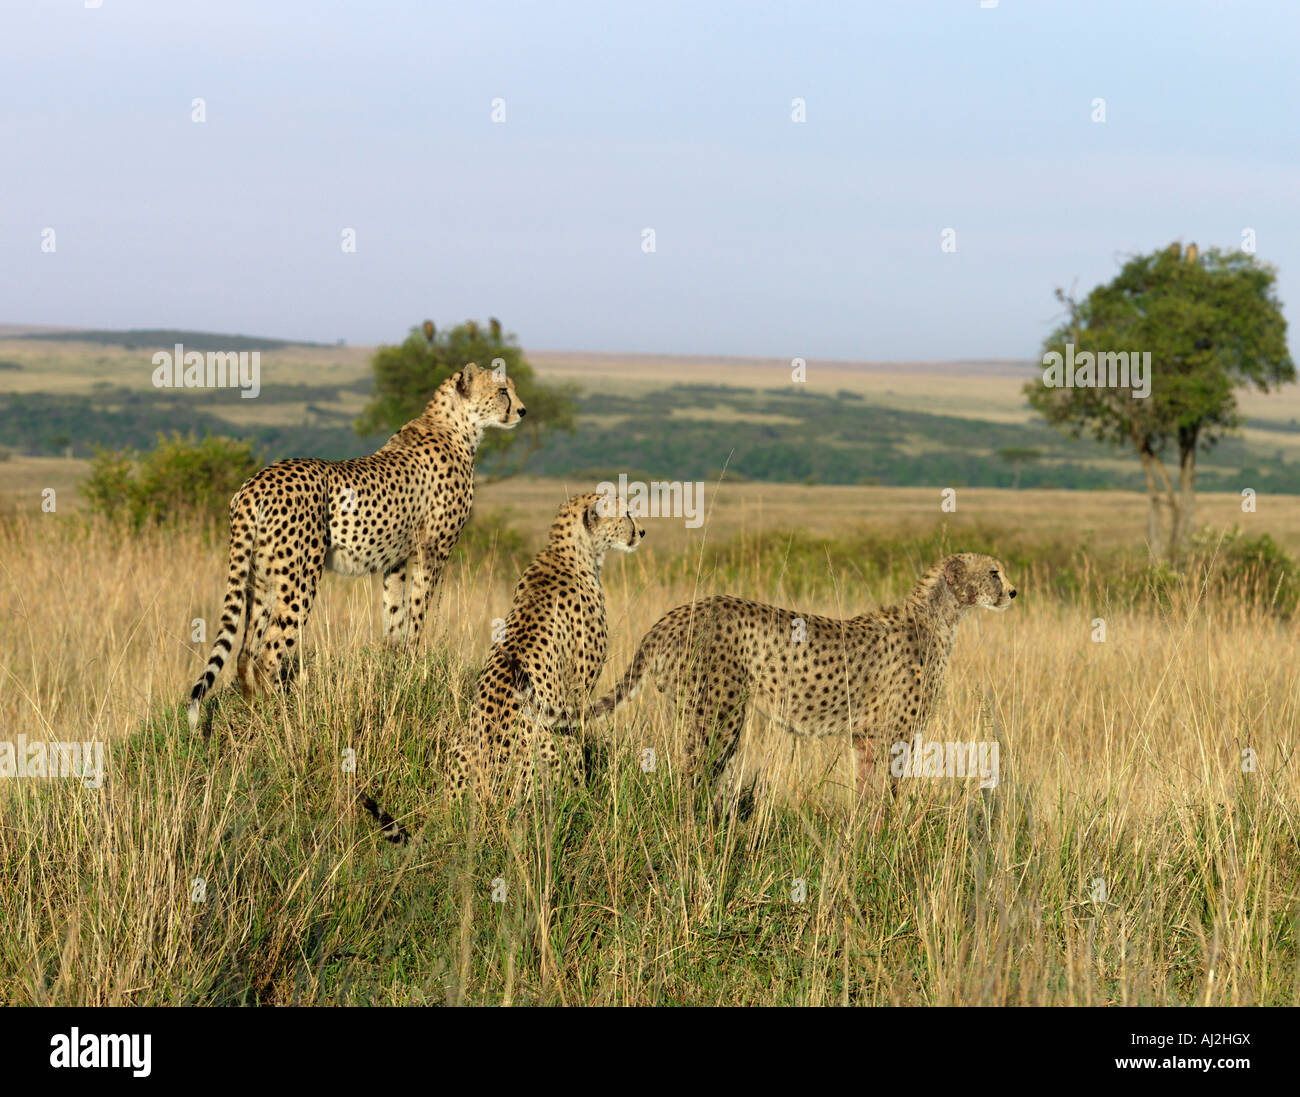 A family of three young cheetahs stand on a termite mound to seek their quarry of small antelopes grazing on the - Stock Image